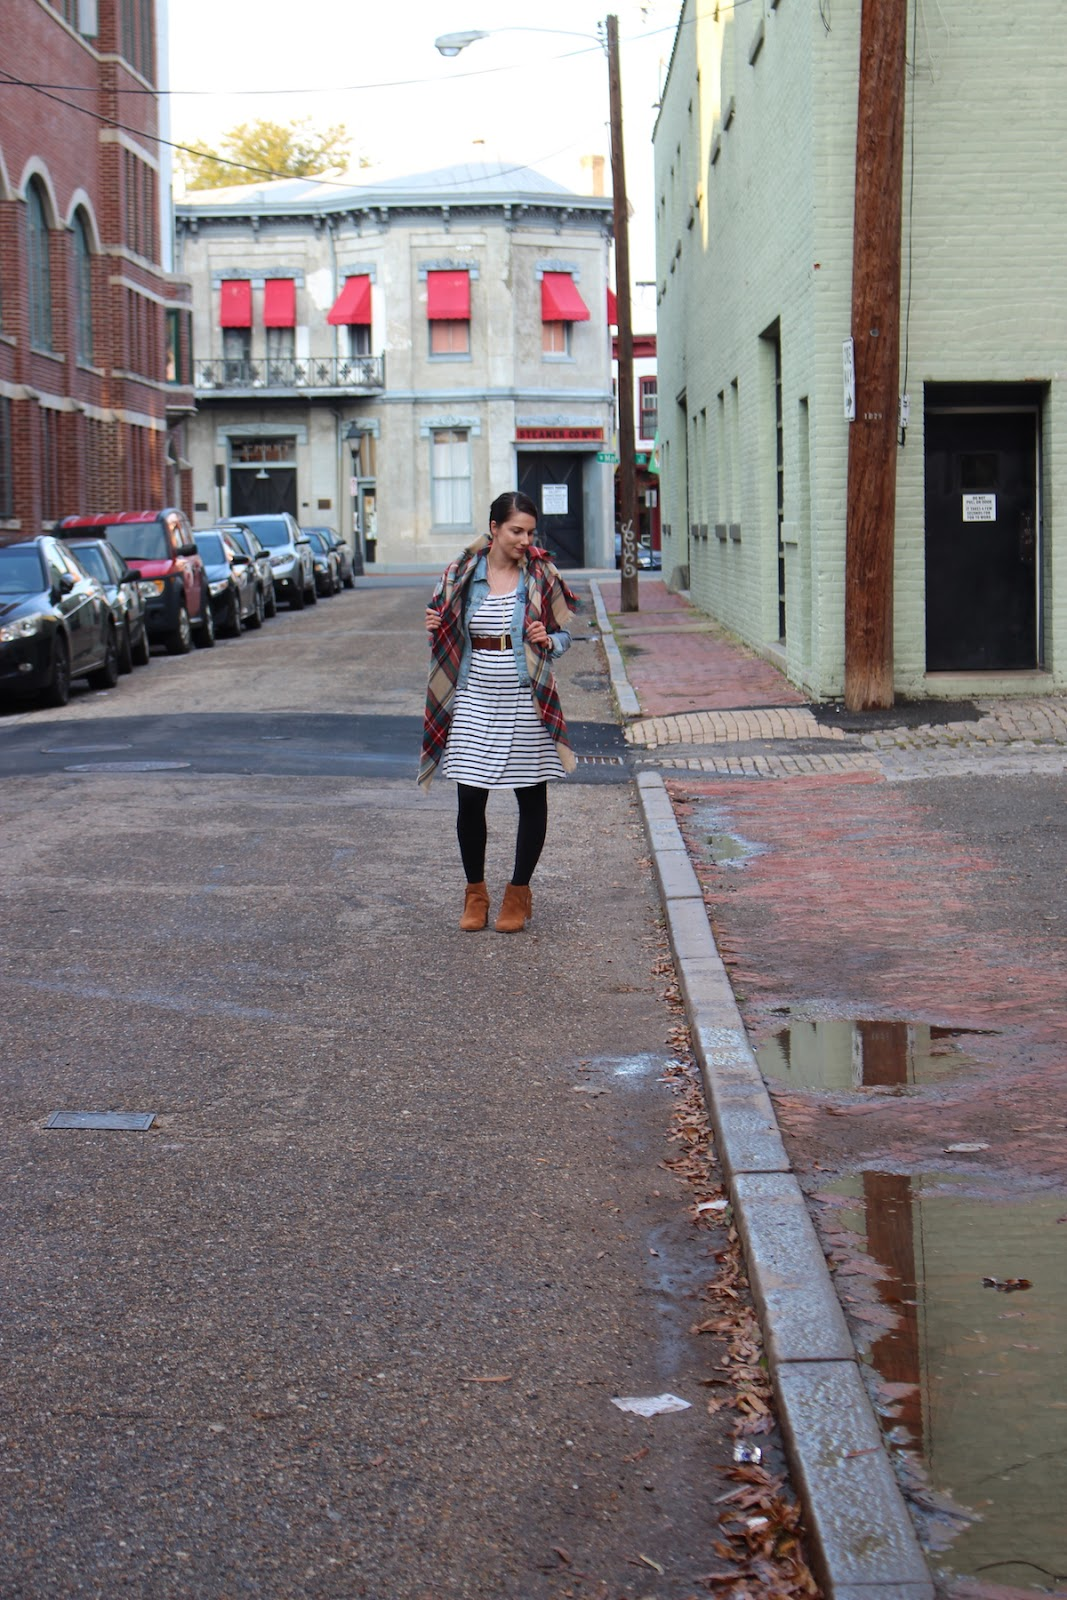 This is a shot of me in the middle of the street in Richmond Virginia.